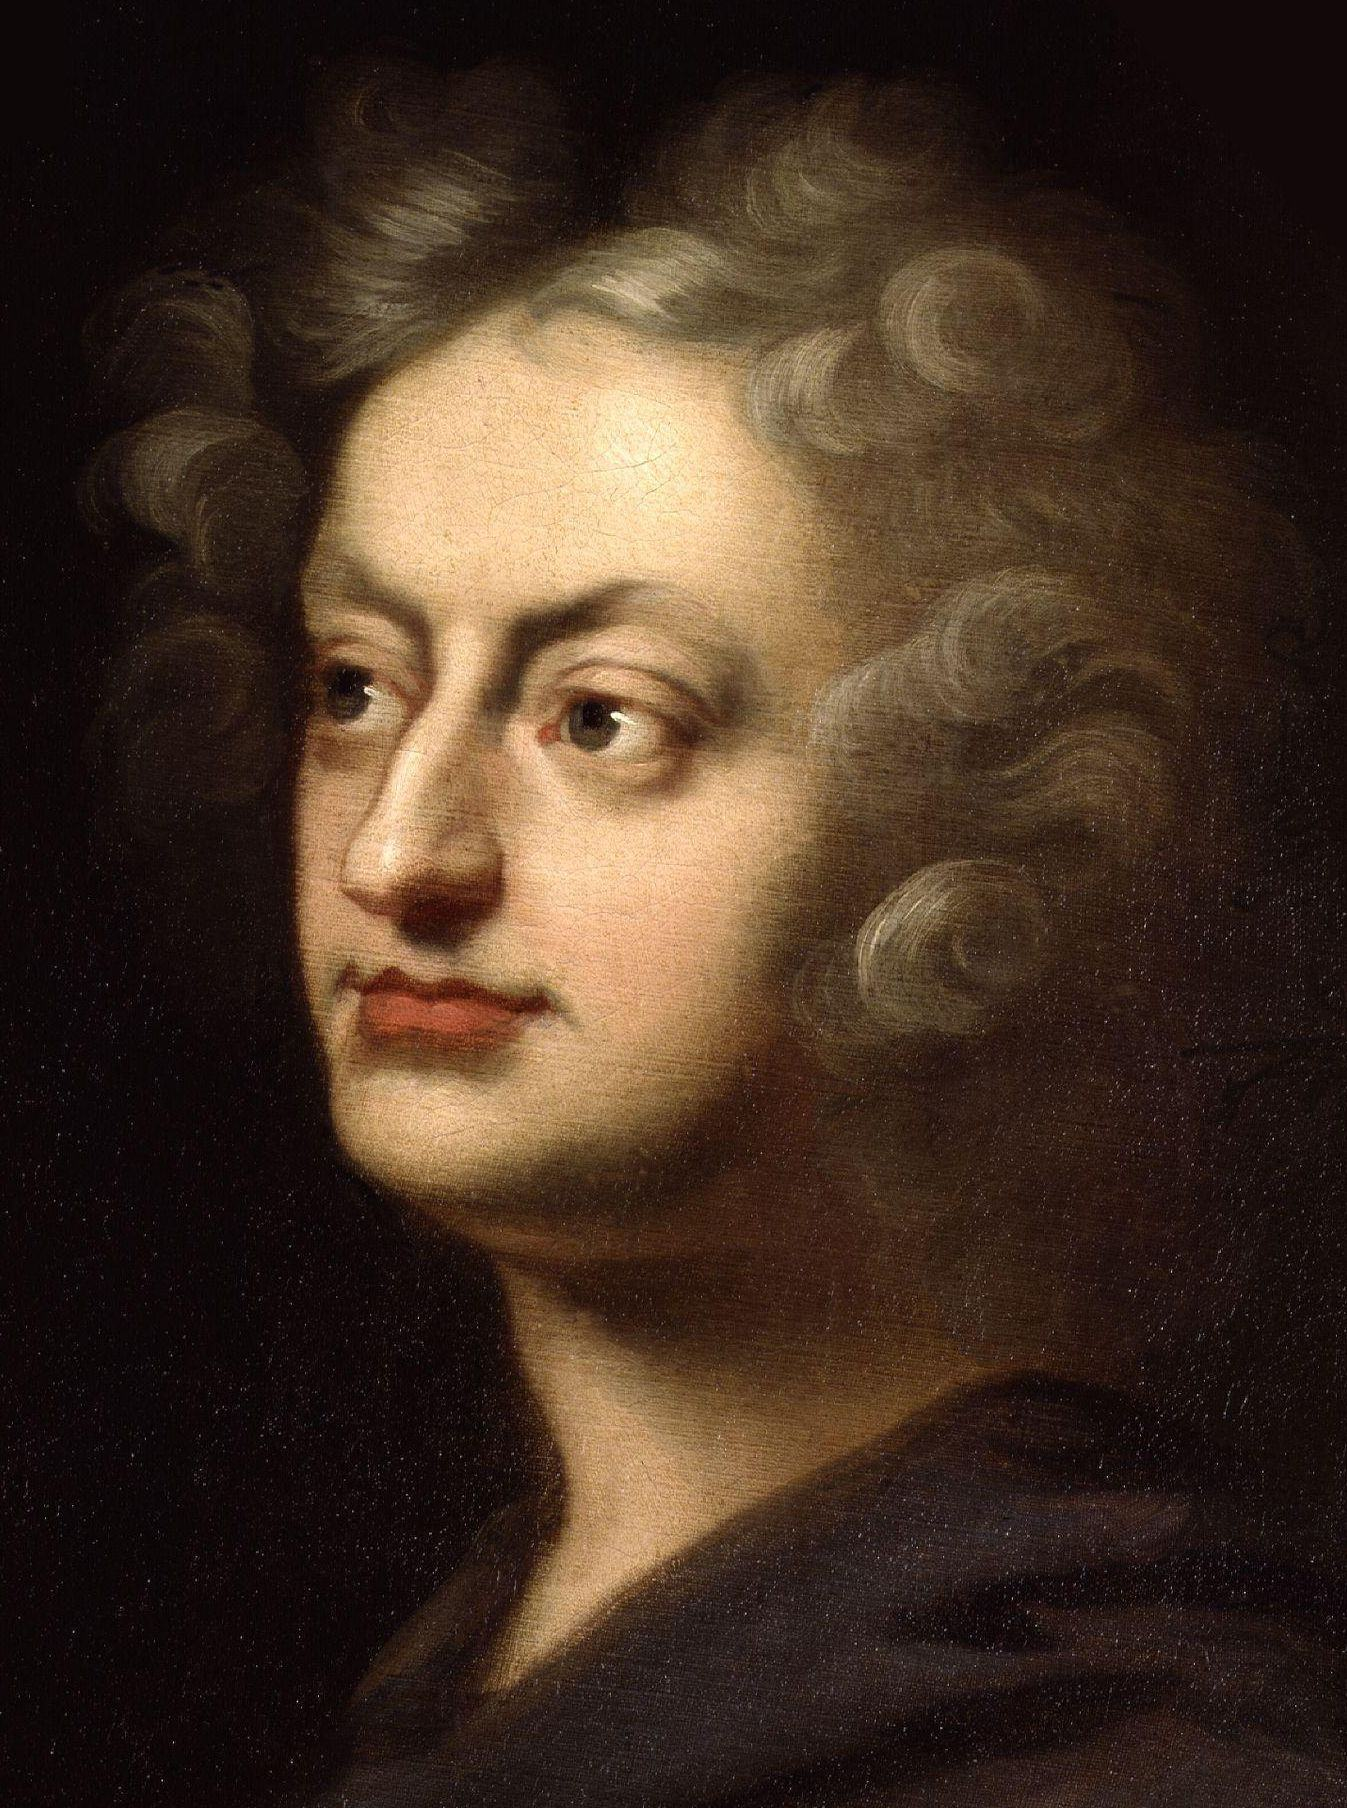 Matthew Locke (1621-1677) e Henry Purcell (1659-1695): The Theater of Musick – Musique Pour Les Théâtres Londoniens